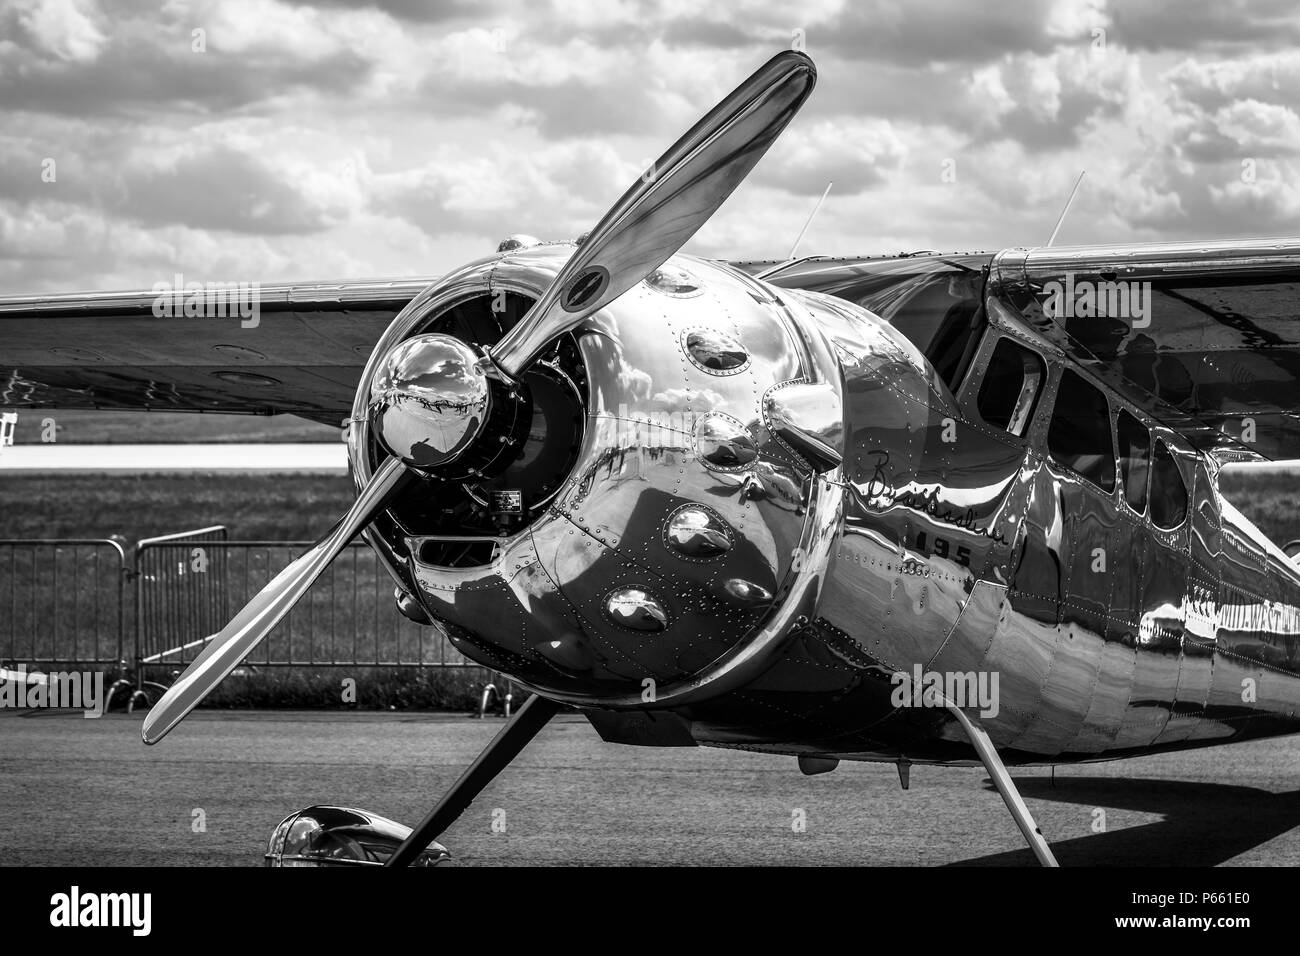 Light personal and business aircraft Cessna 195A by Mid-West Airlines on the airfield. Black and white. Exhibition ILA Berlin Air Show 2018. - Stock Image